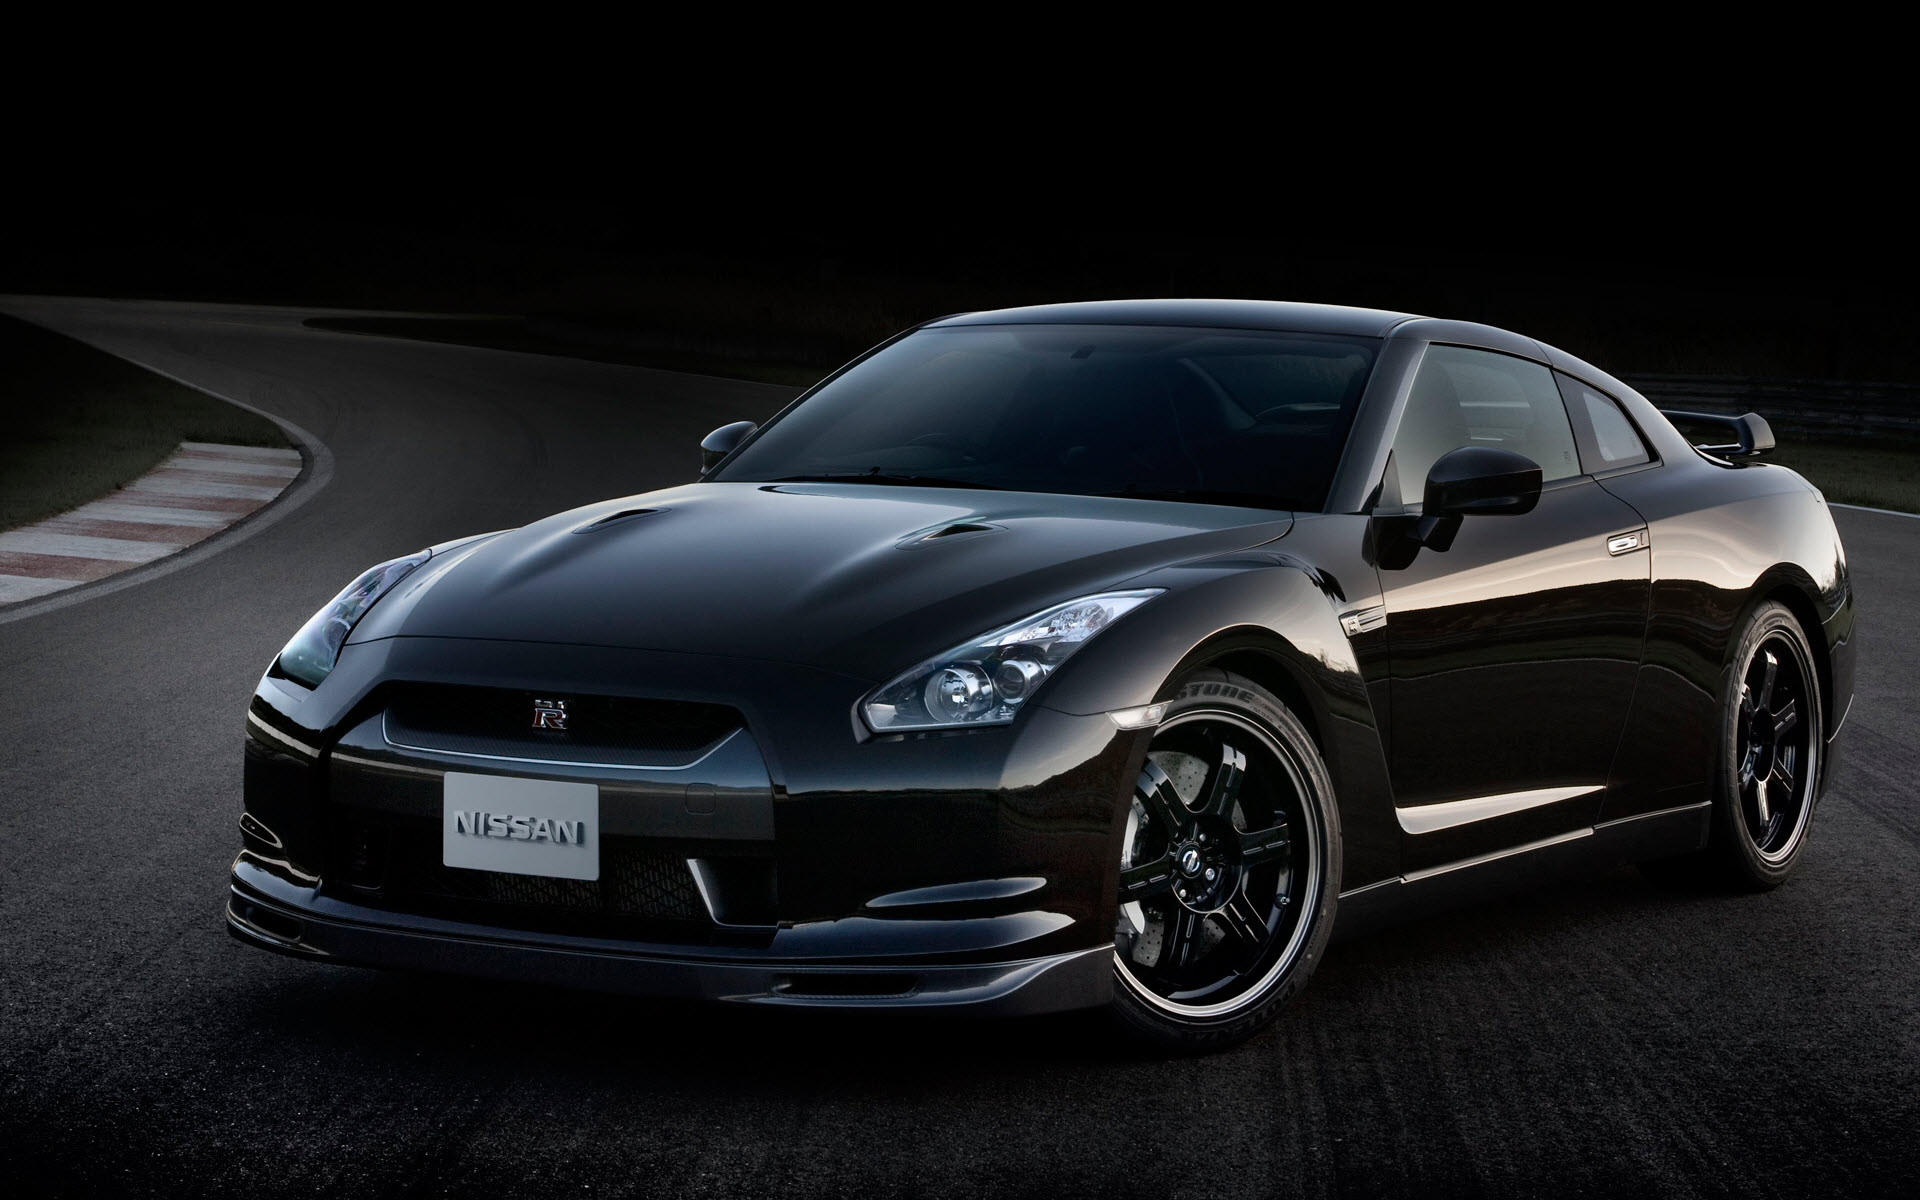 Car Nissan Gtr Specv Hd 296076 Wallpaper Wallpaper